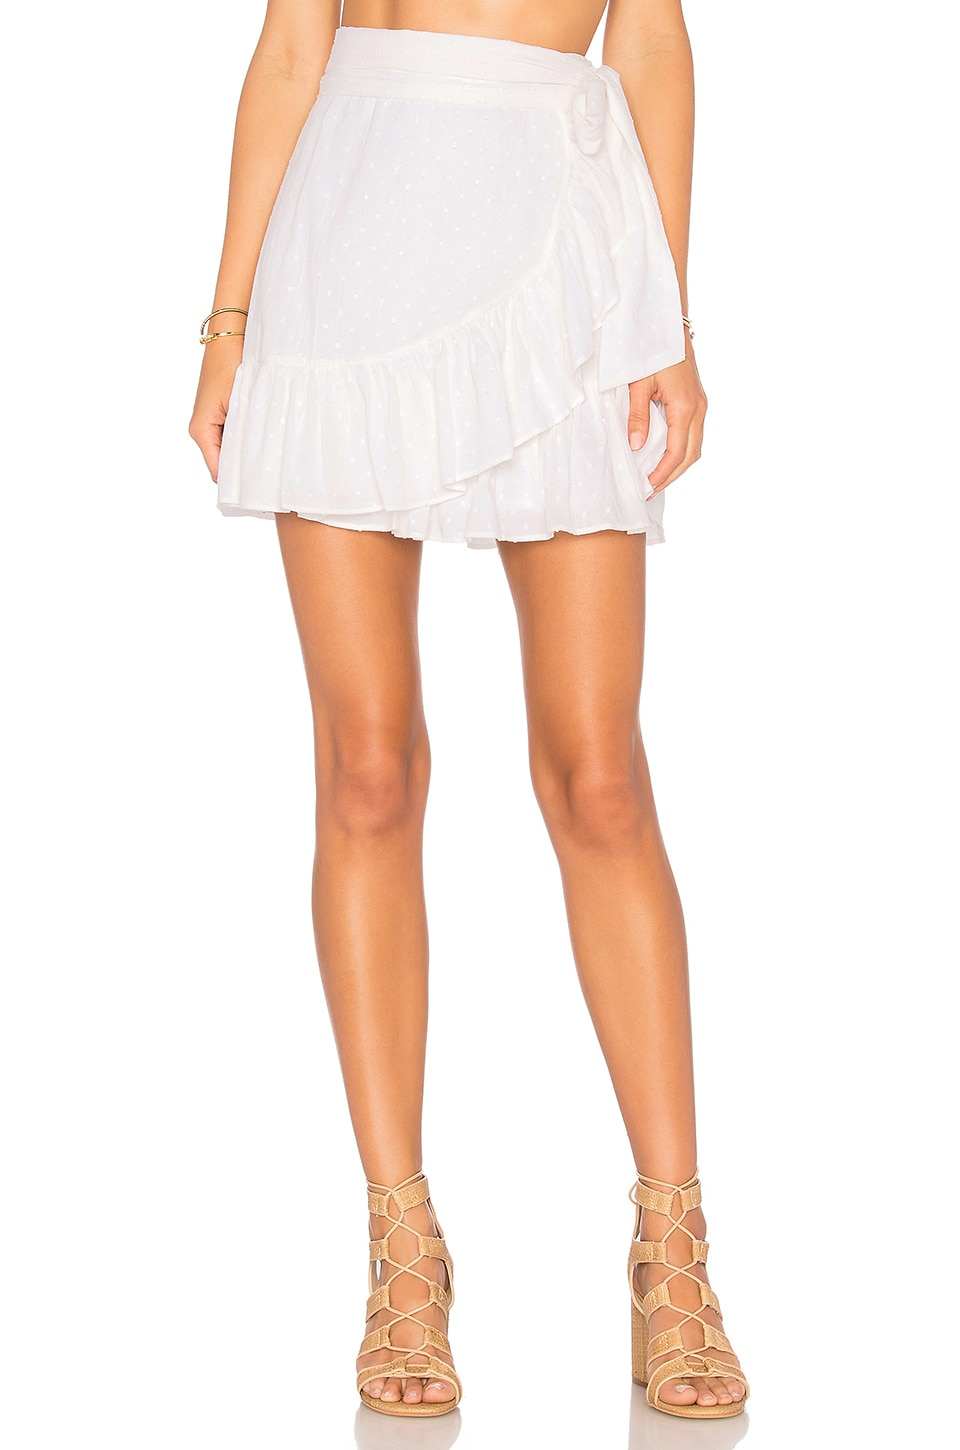 Tularosa x REVOLVE Maida Ruffle Skirt in White